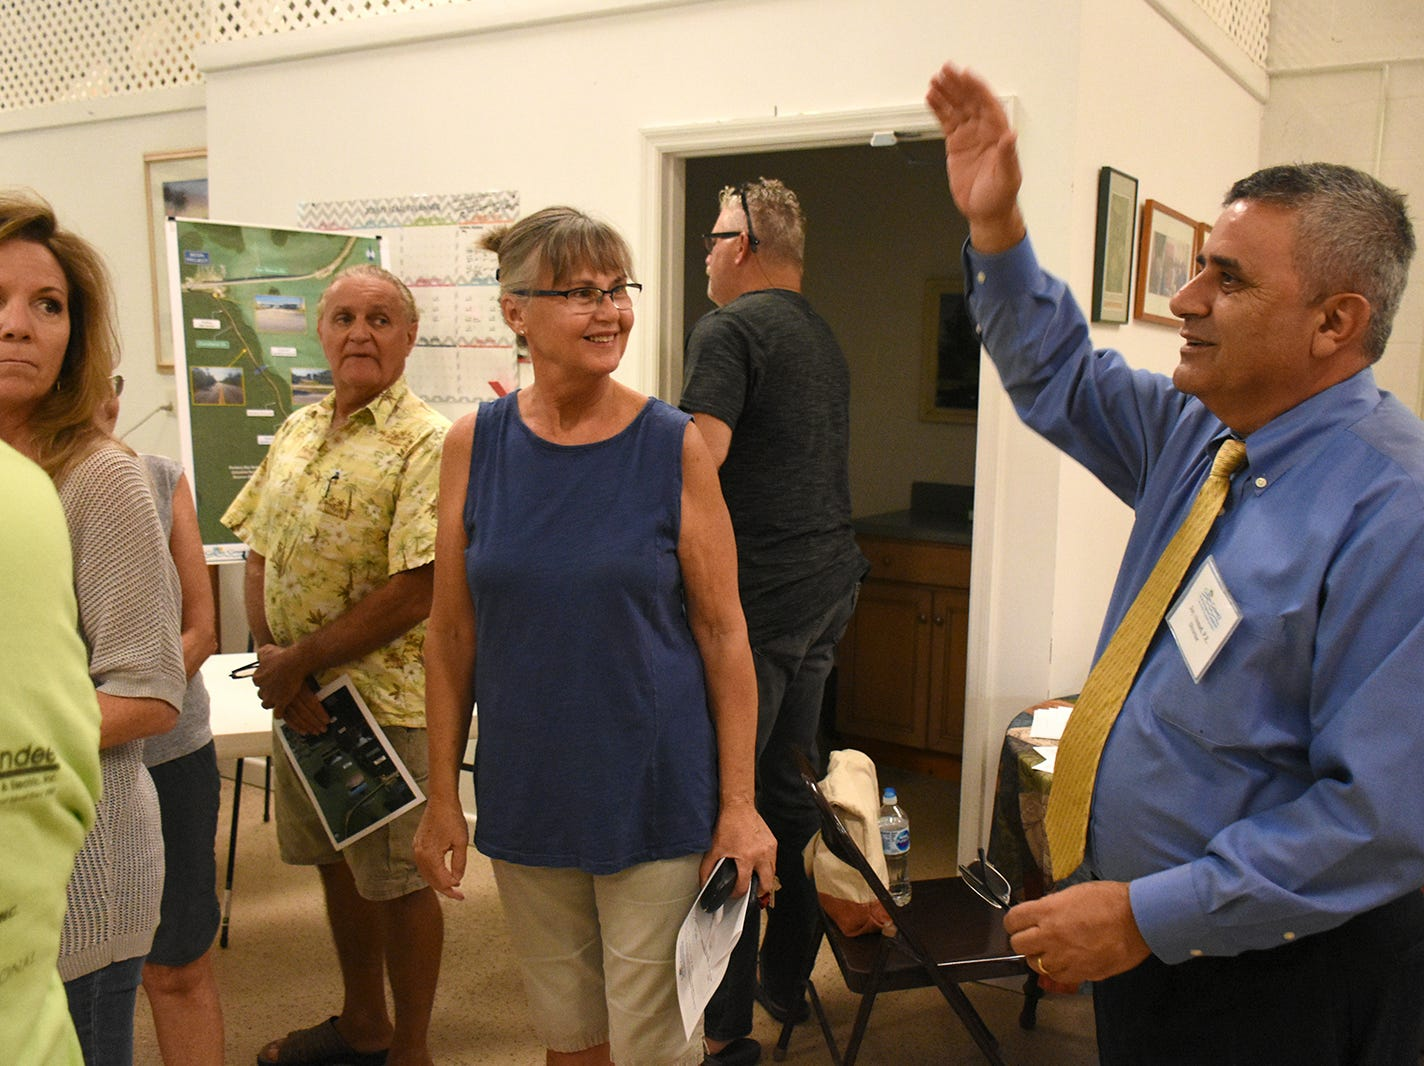 Department director Jay Ahmad answers a resident's question. County planners held a public information meeting at the Goodland Community Center on Thursday evening, to go over plans and solicit resident input on the upcoming work to improve Goodland Drive.